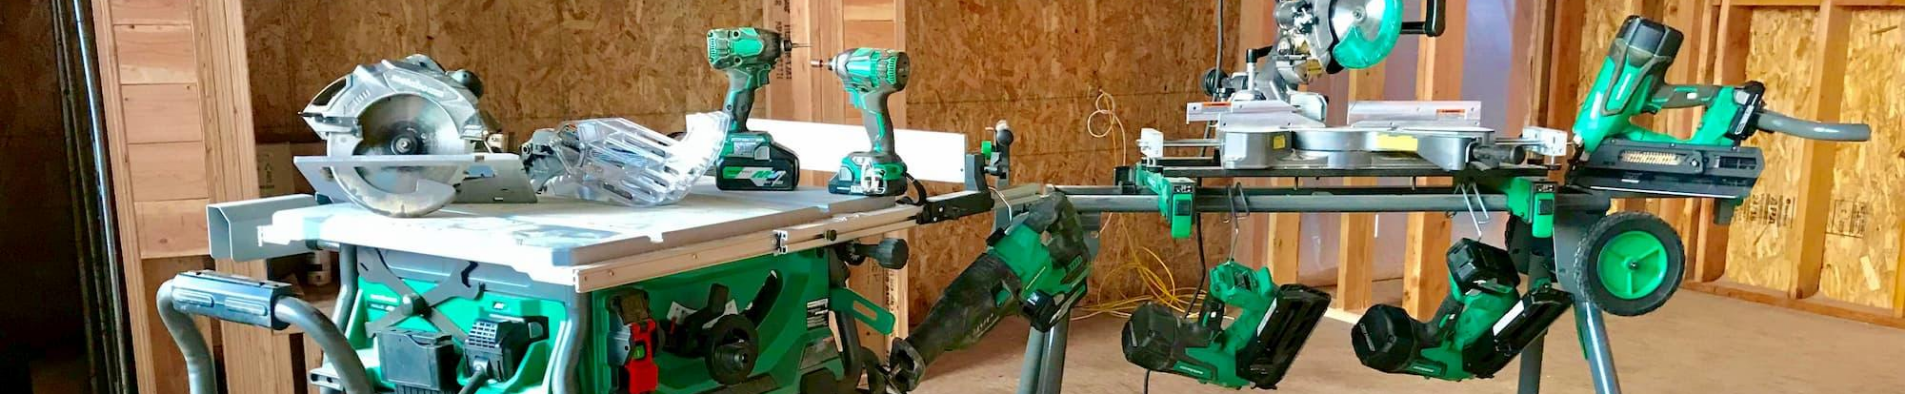 Cordless and Electric Power Tools